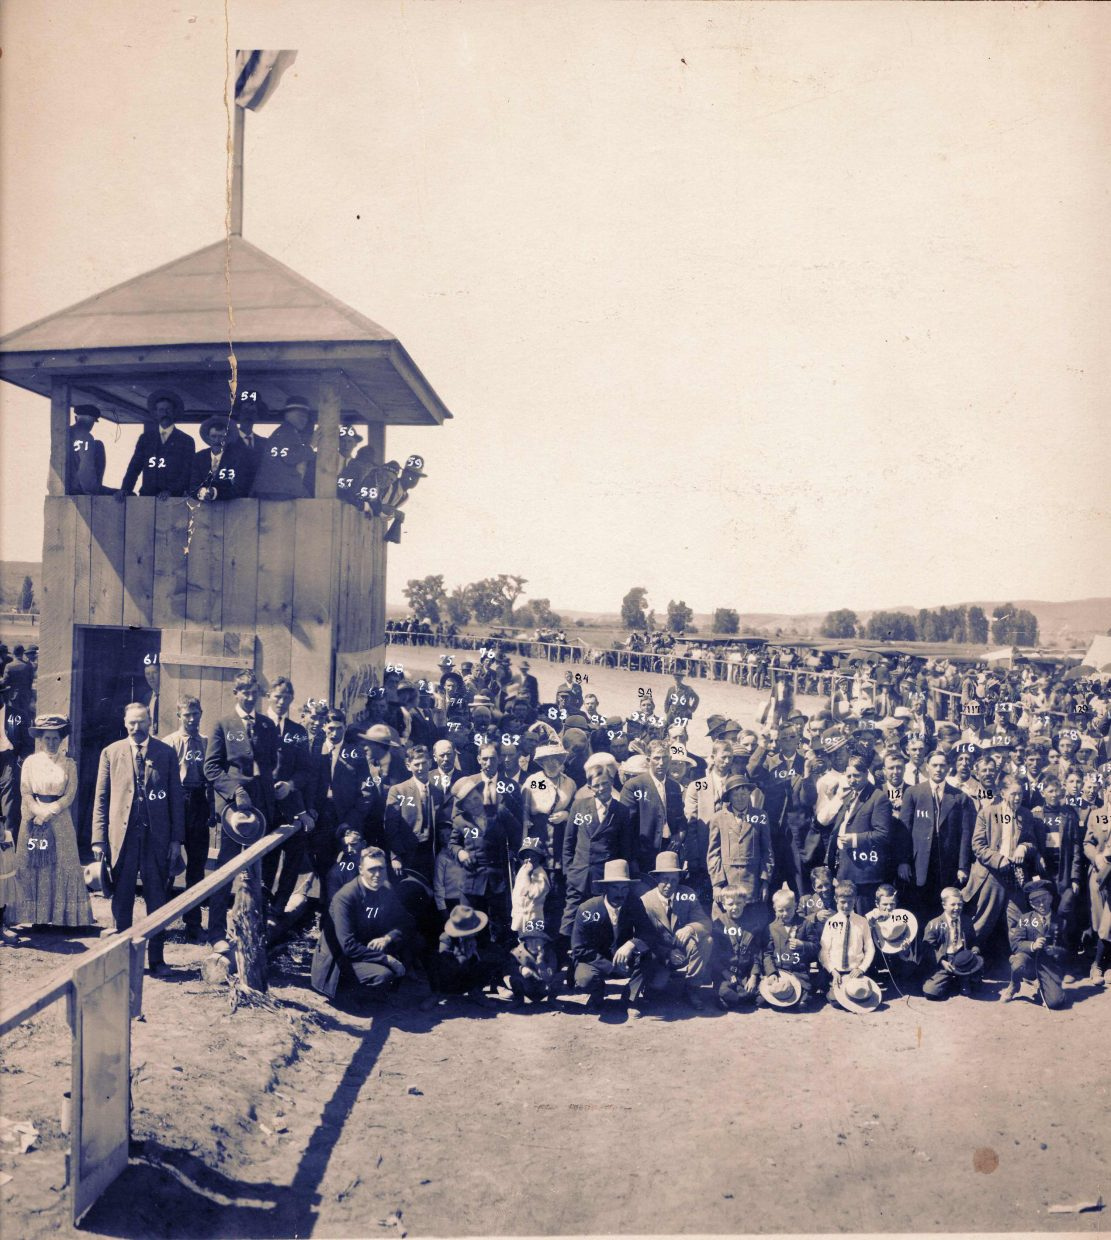 A group of fairgoers gather on the historic race track at the Routt County Fairgrounds in Hayden. This photo was taken at the first fair held in September 1914.